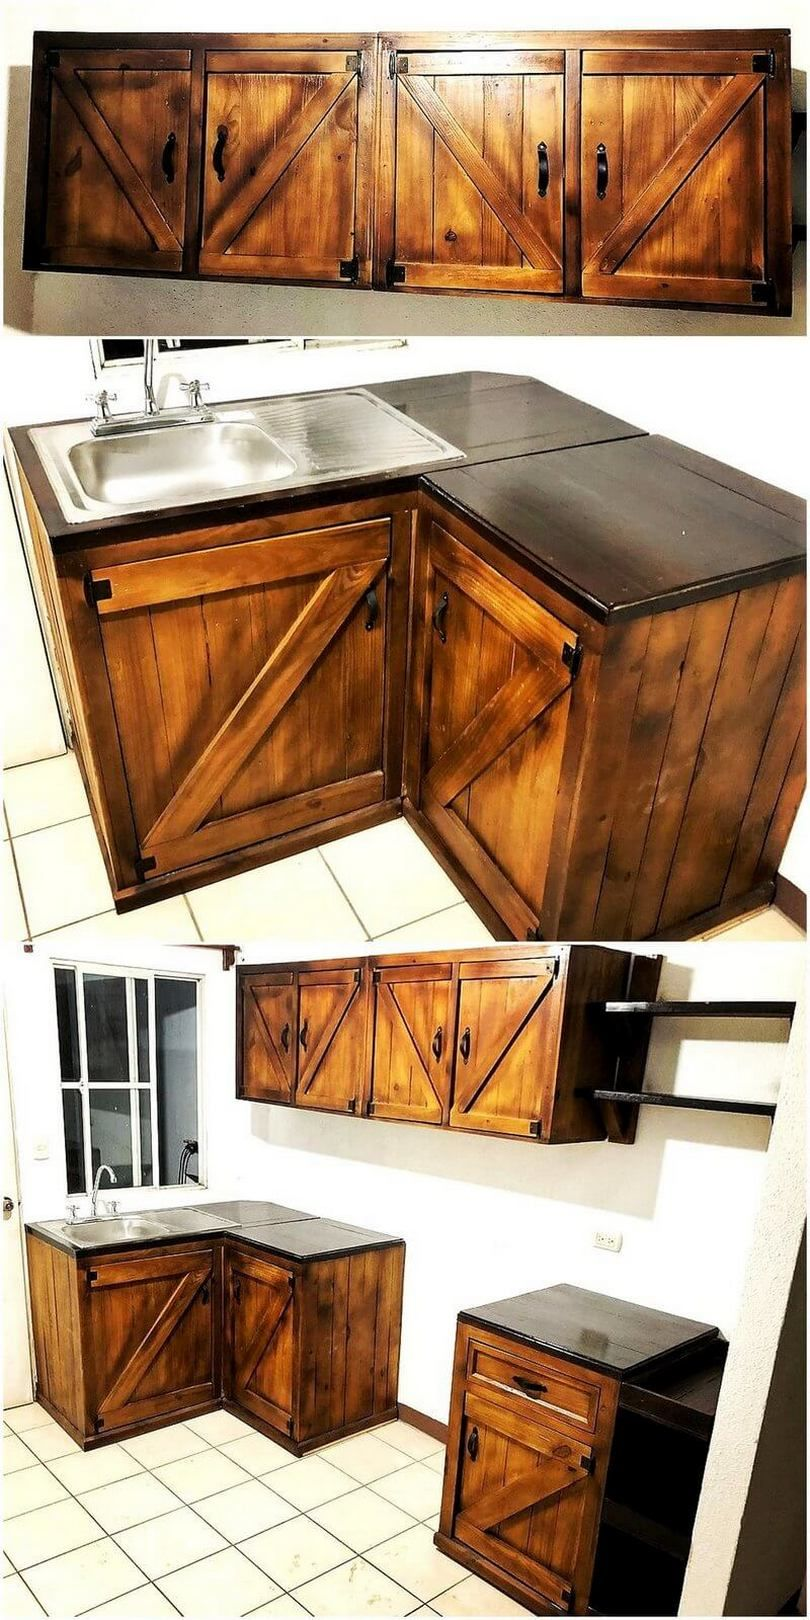 Rustic Creations Out of Used Wood Pallets #kitchenfurniture